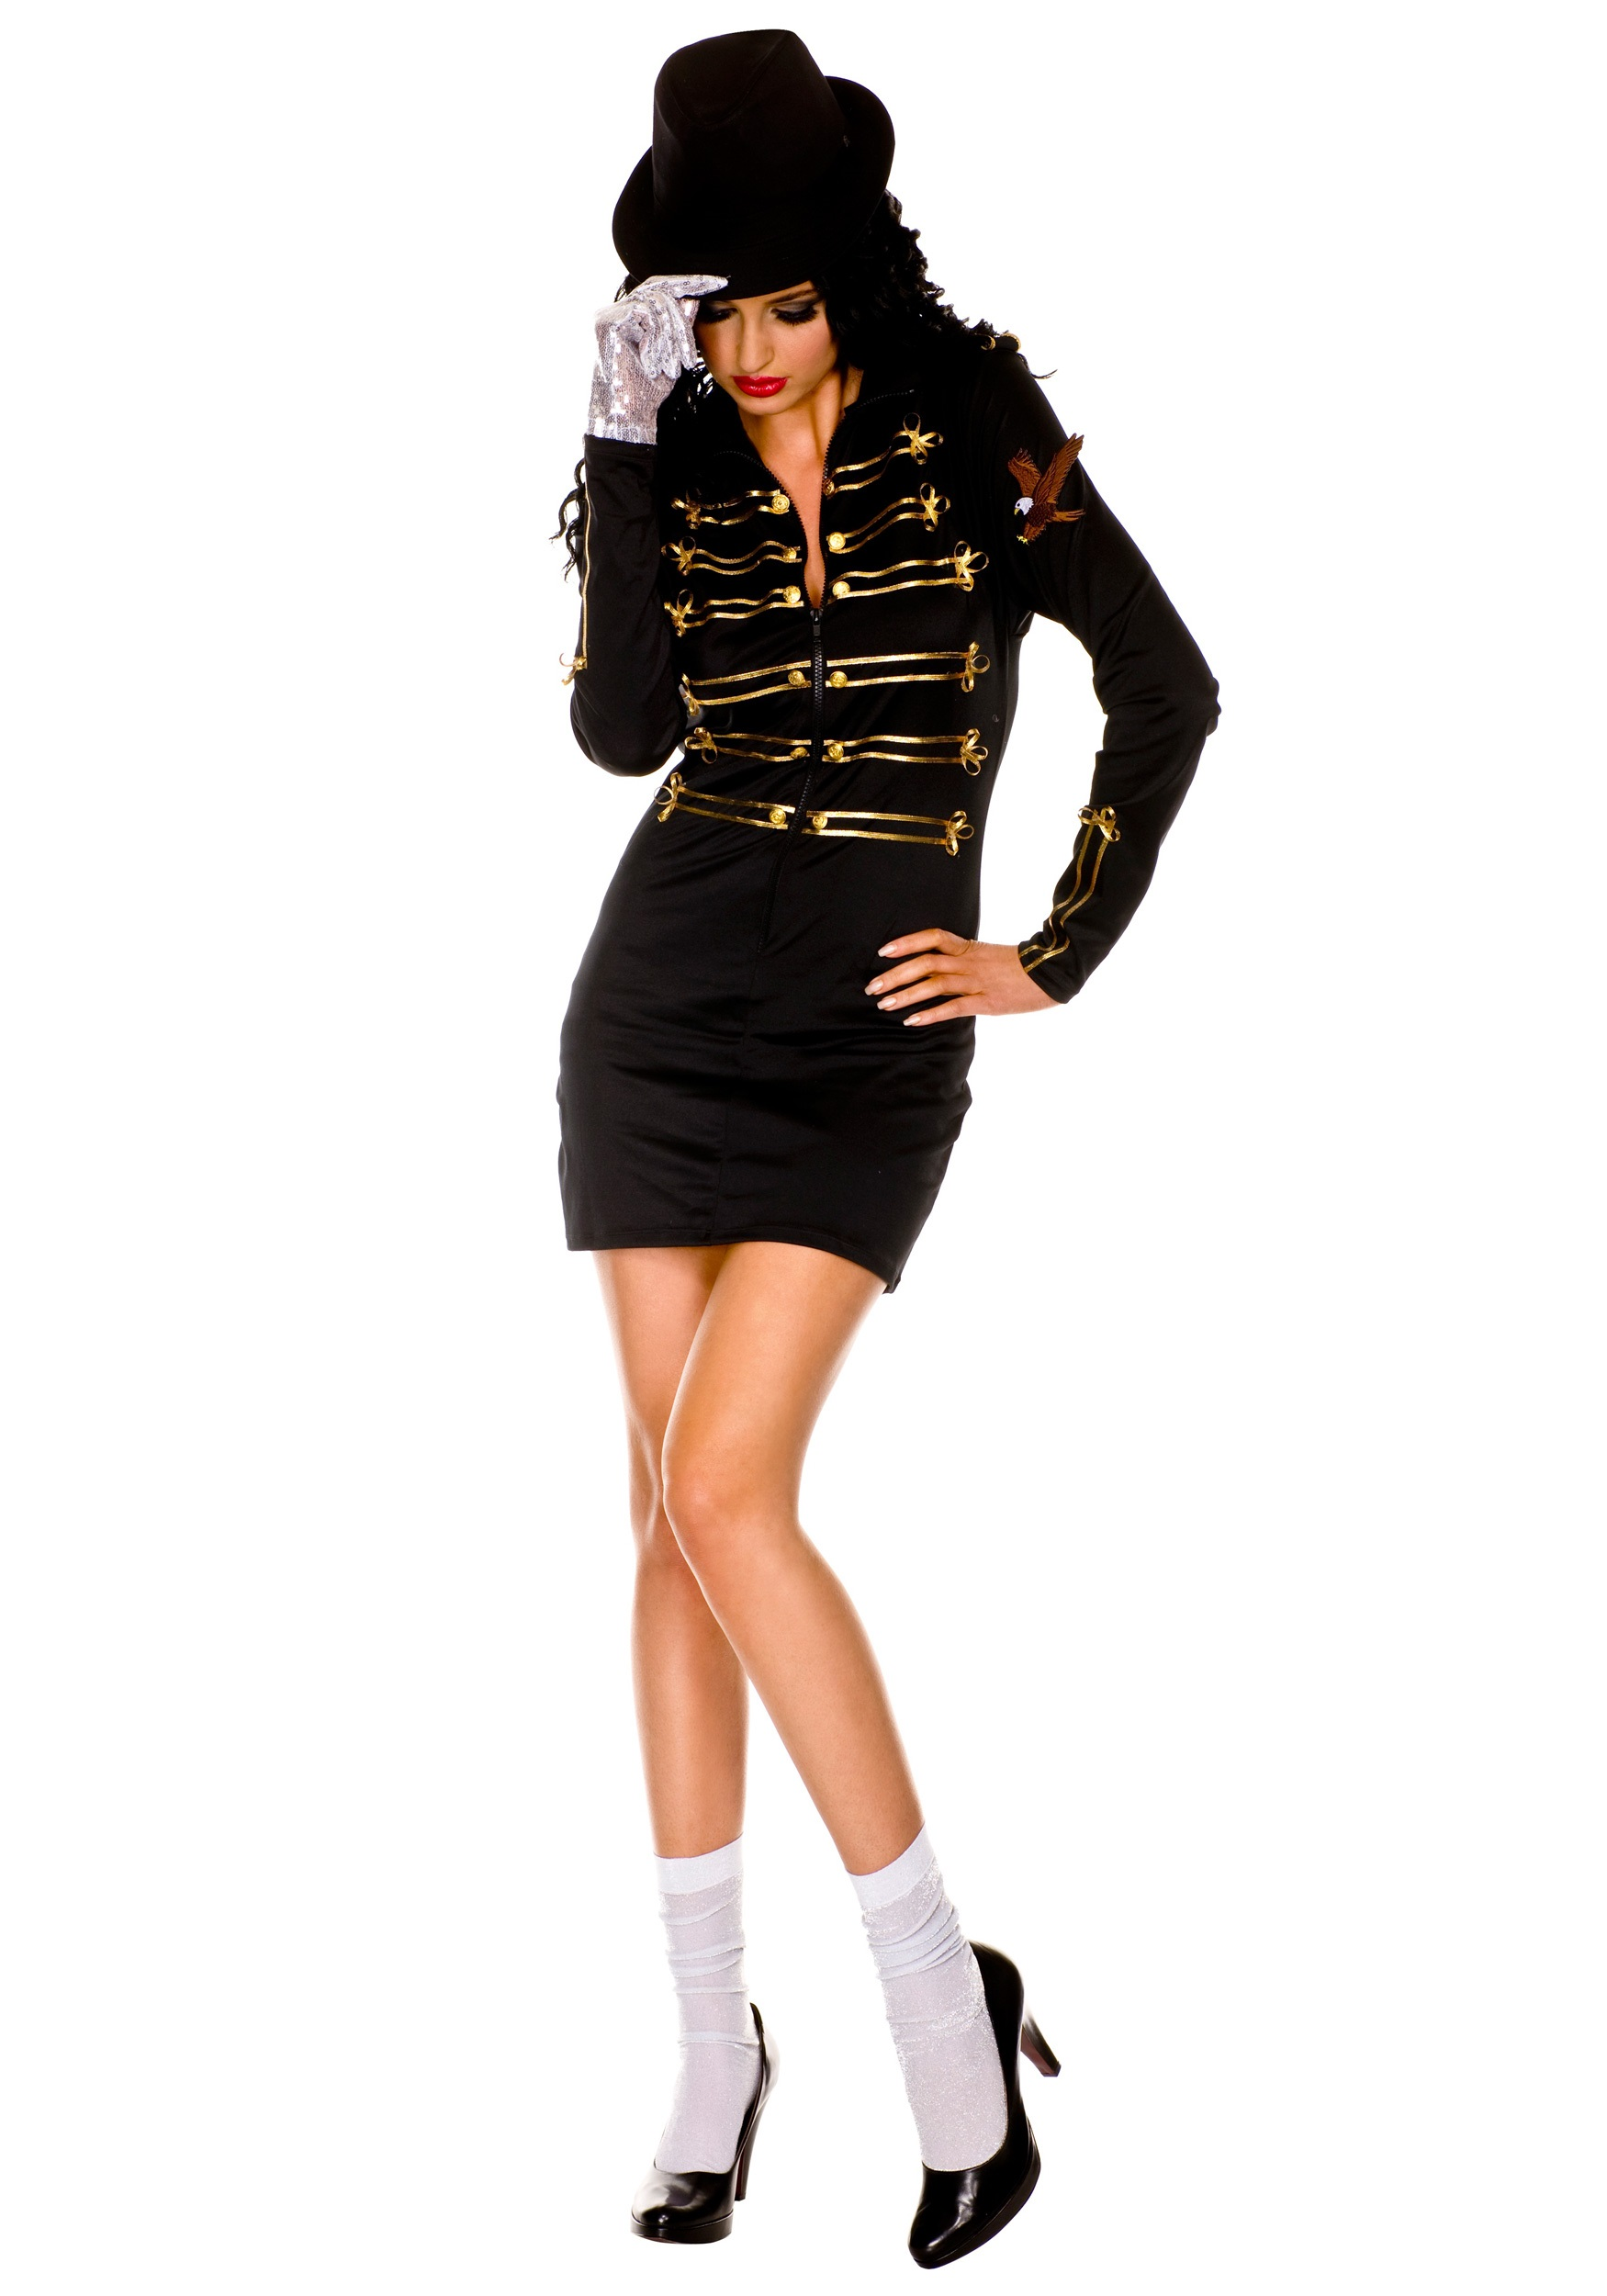 Sexy One Glove Pop Star Costume  sc 1 st  Halloween Costumes & Sexy One Glove Pop Star Costume - Halloween Costumes